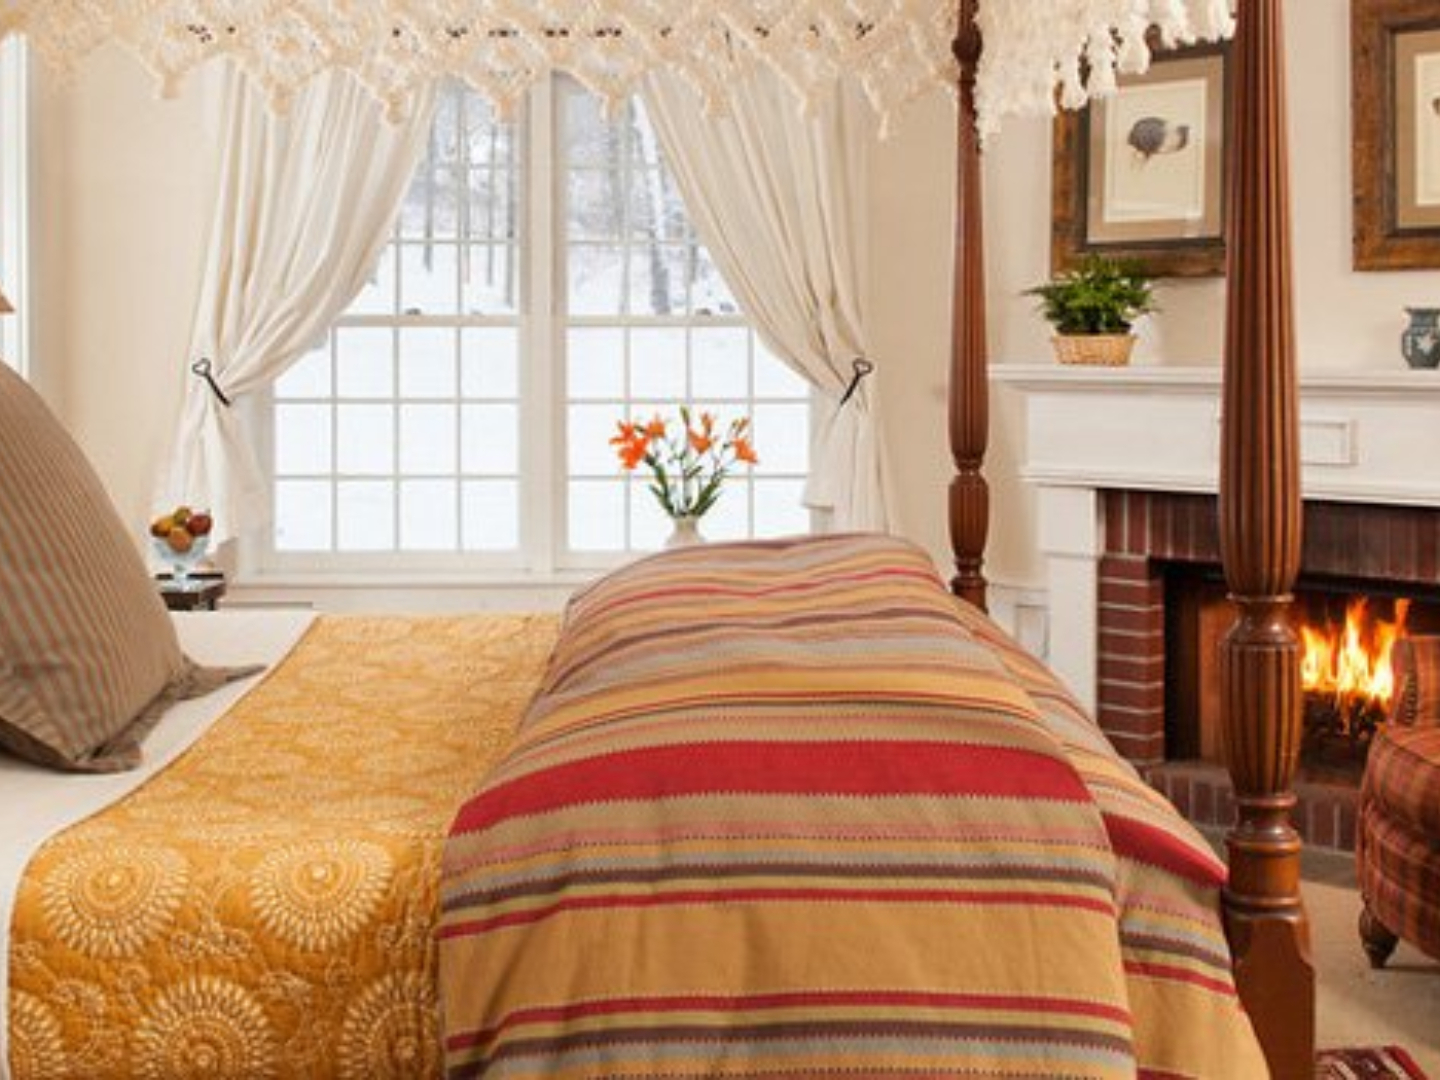 A bedroom with a bed and a fireplace at The Garden Gables Inn.